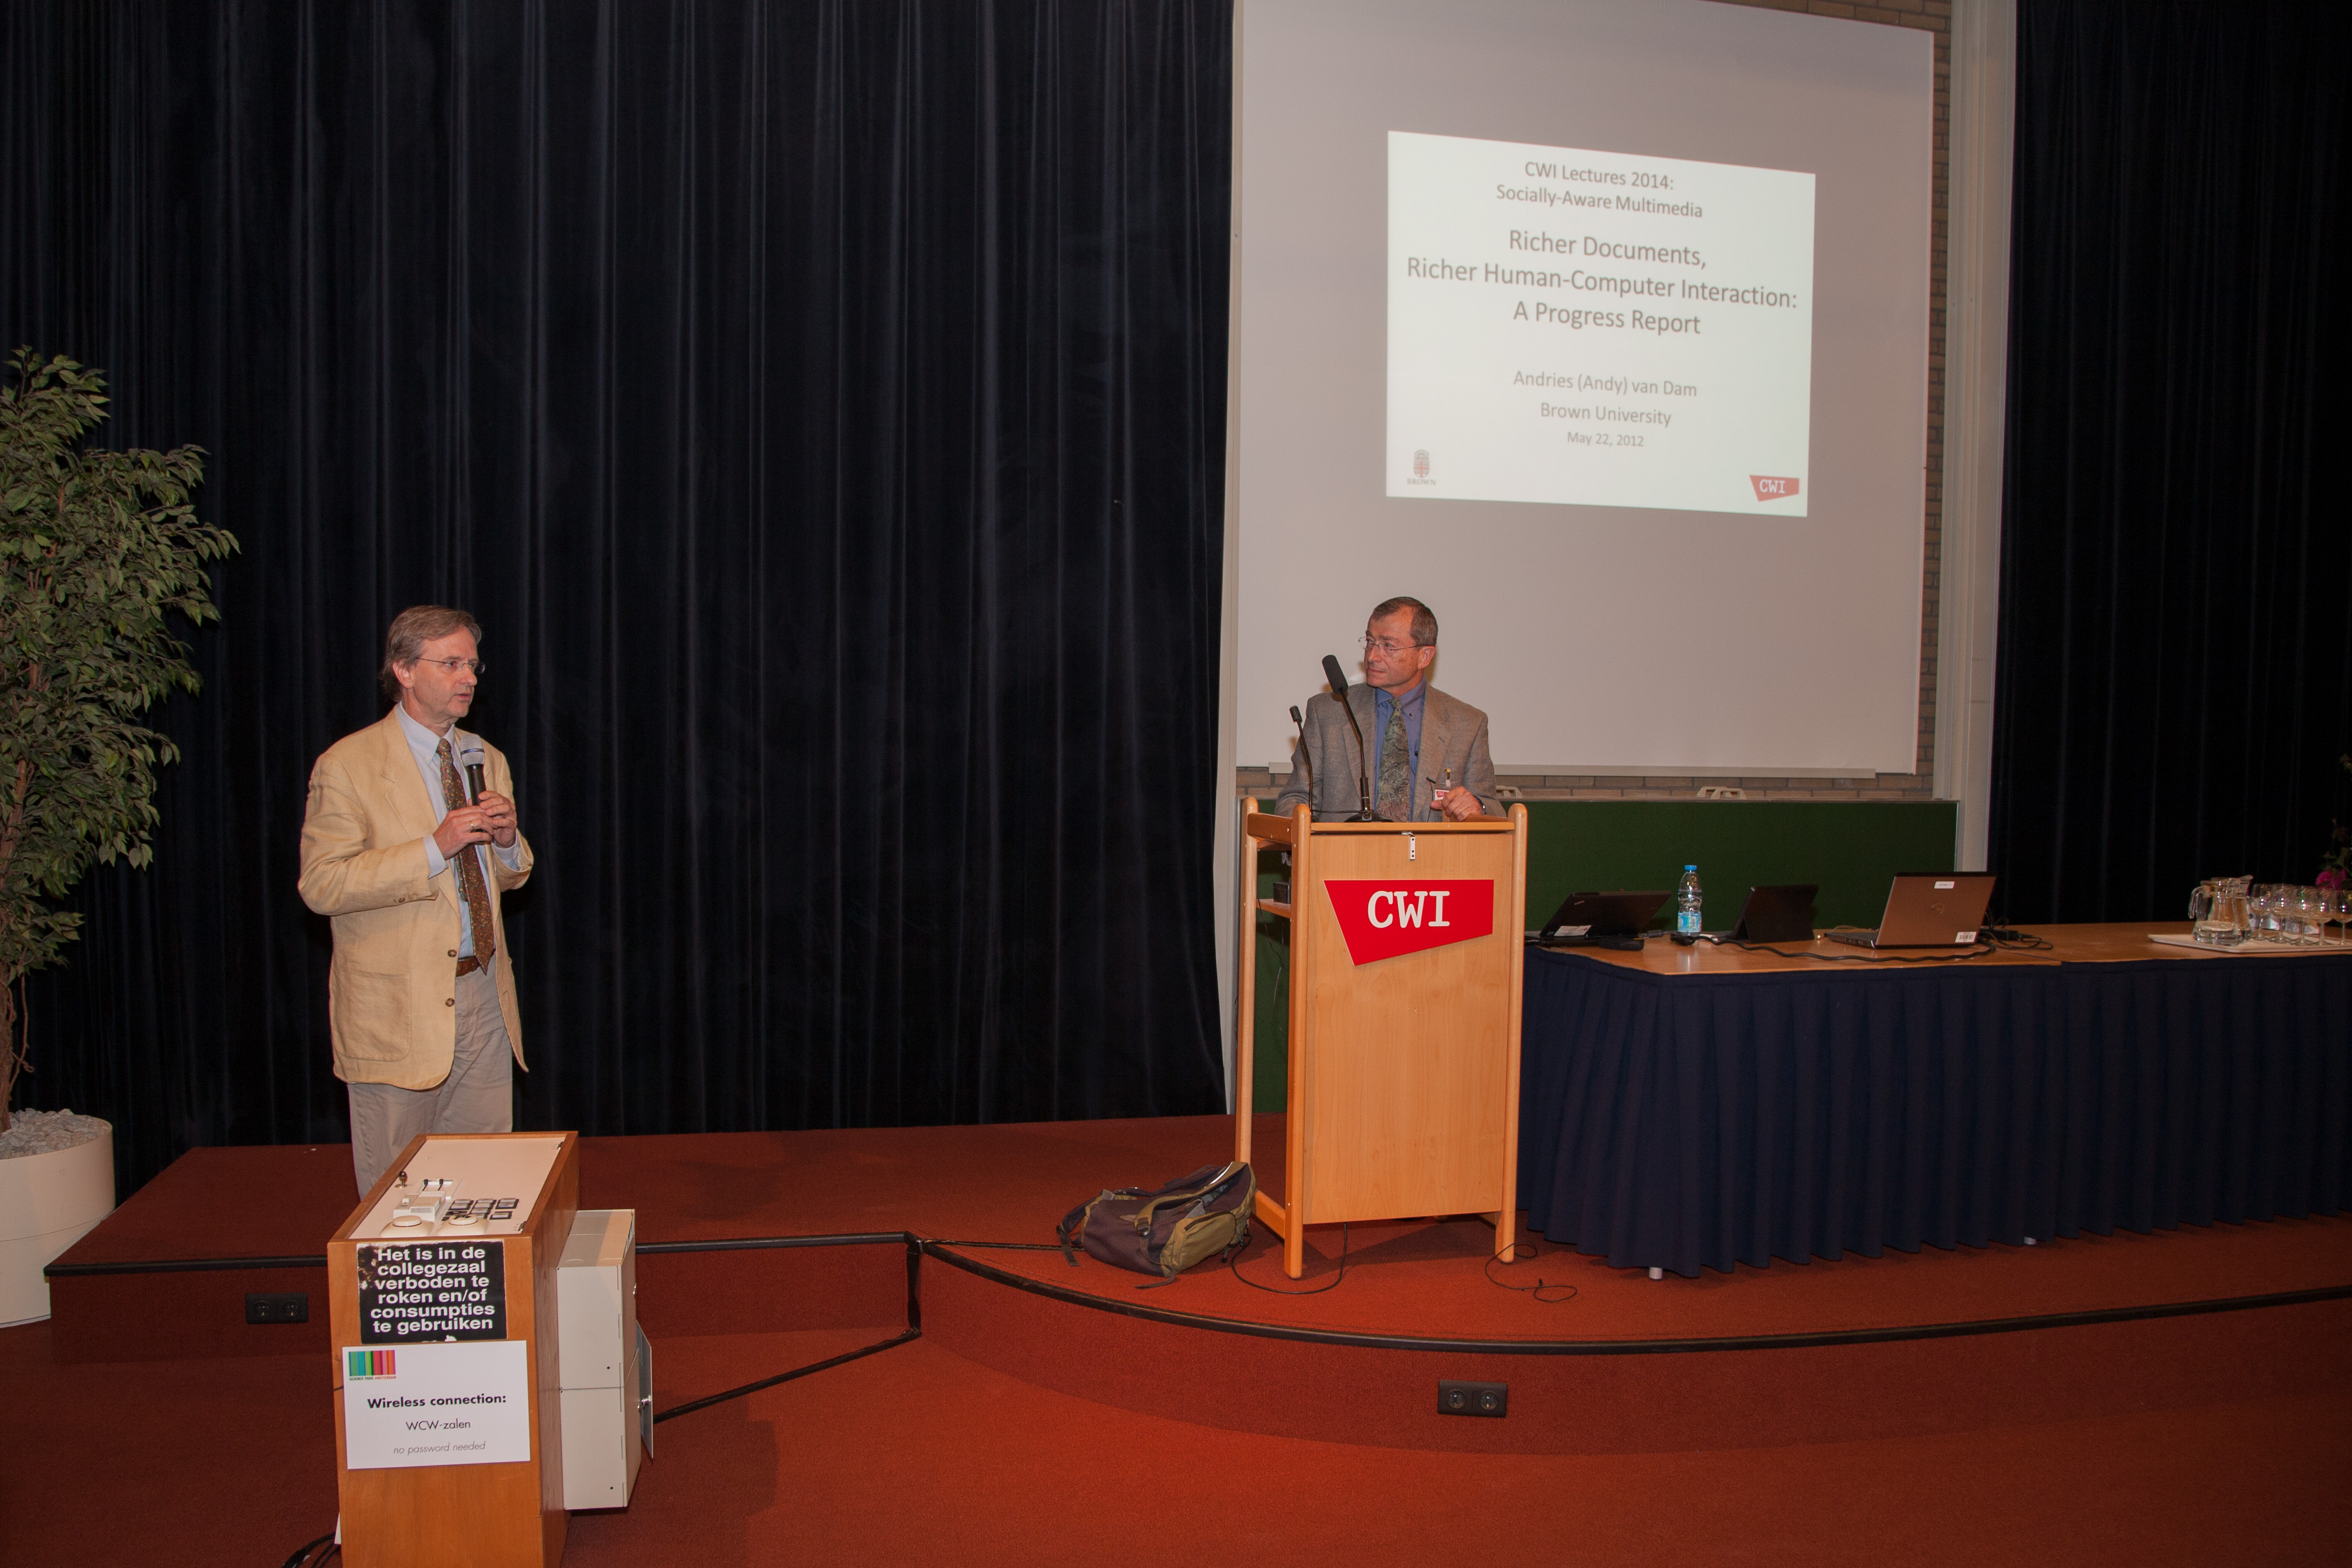 Talks on Lectures 2014